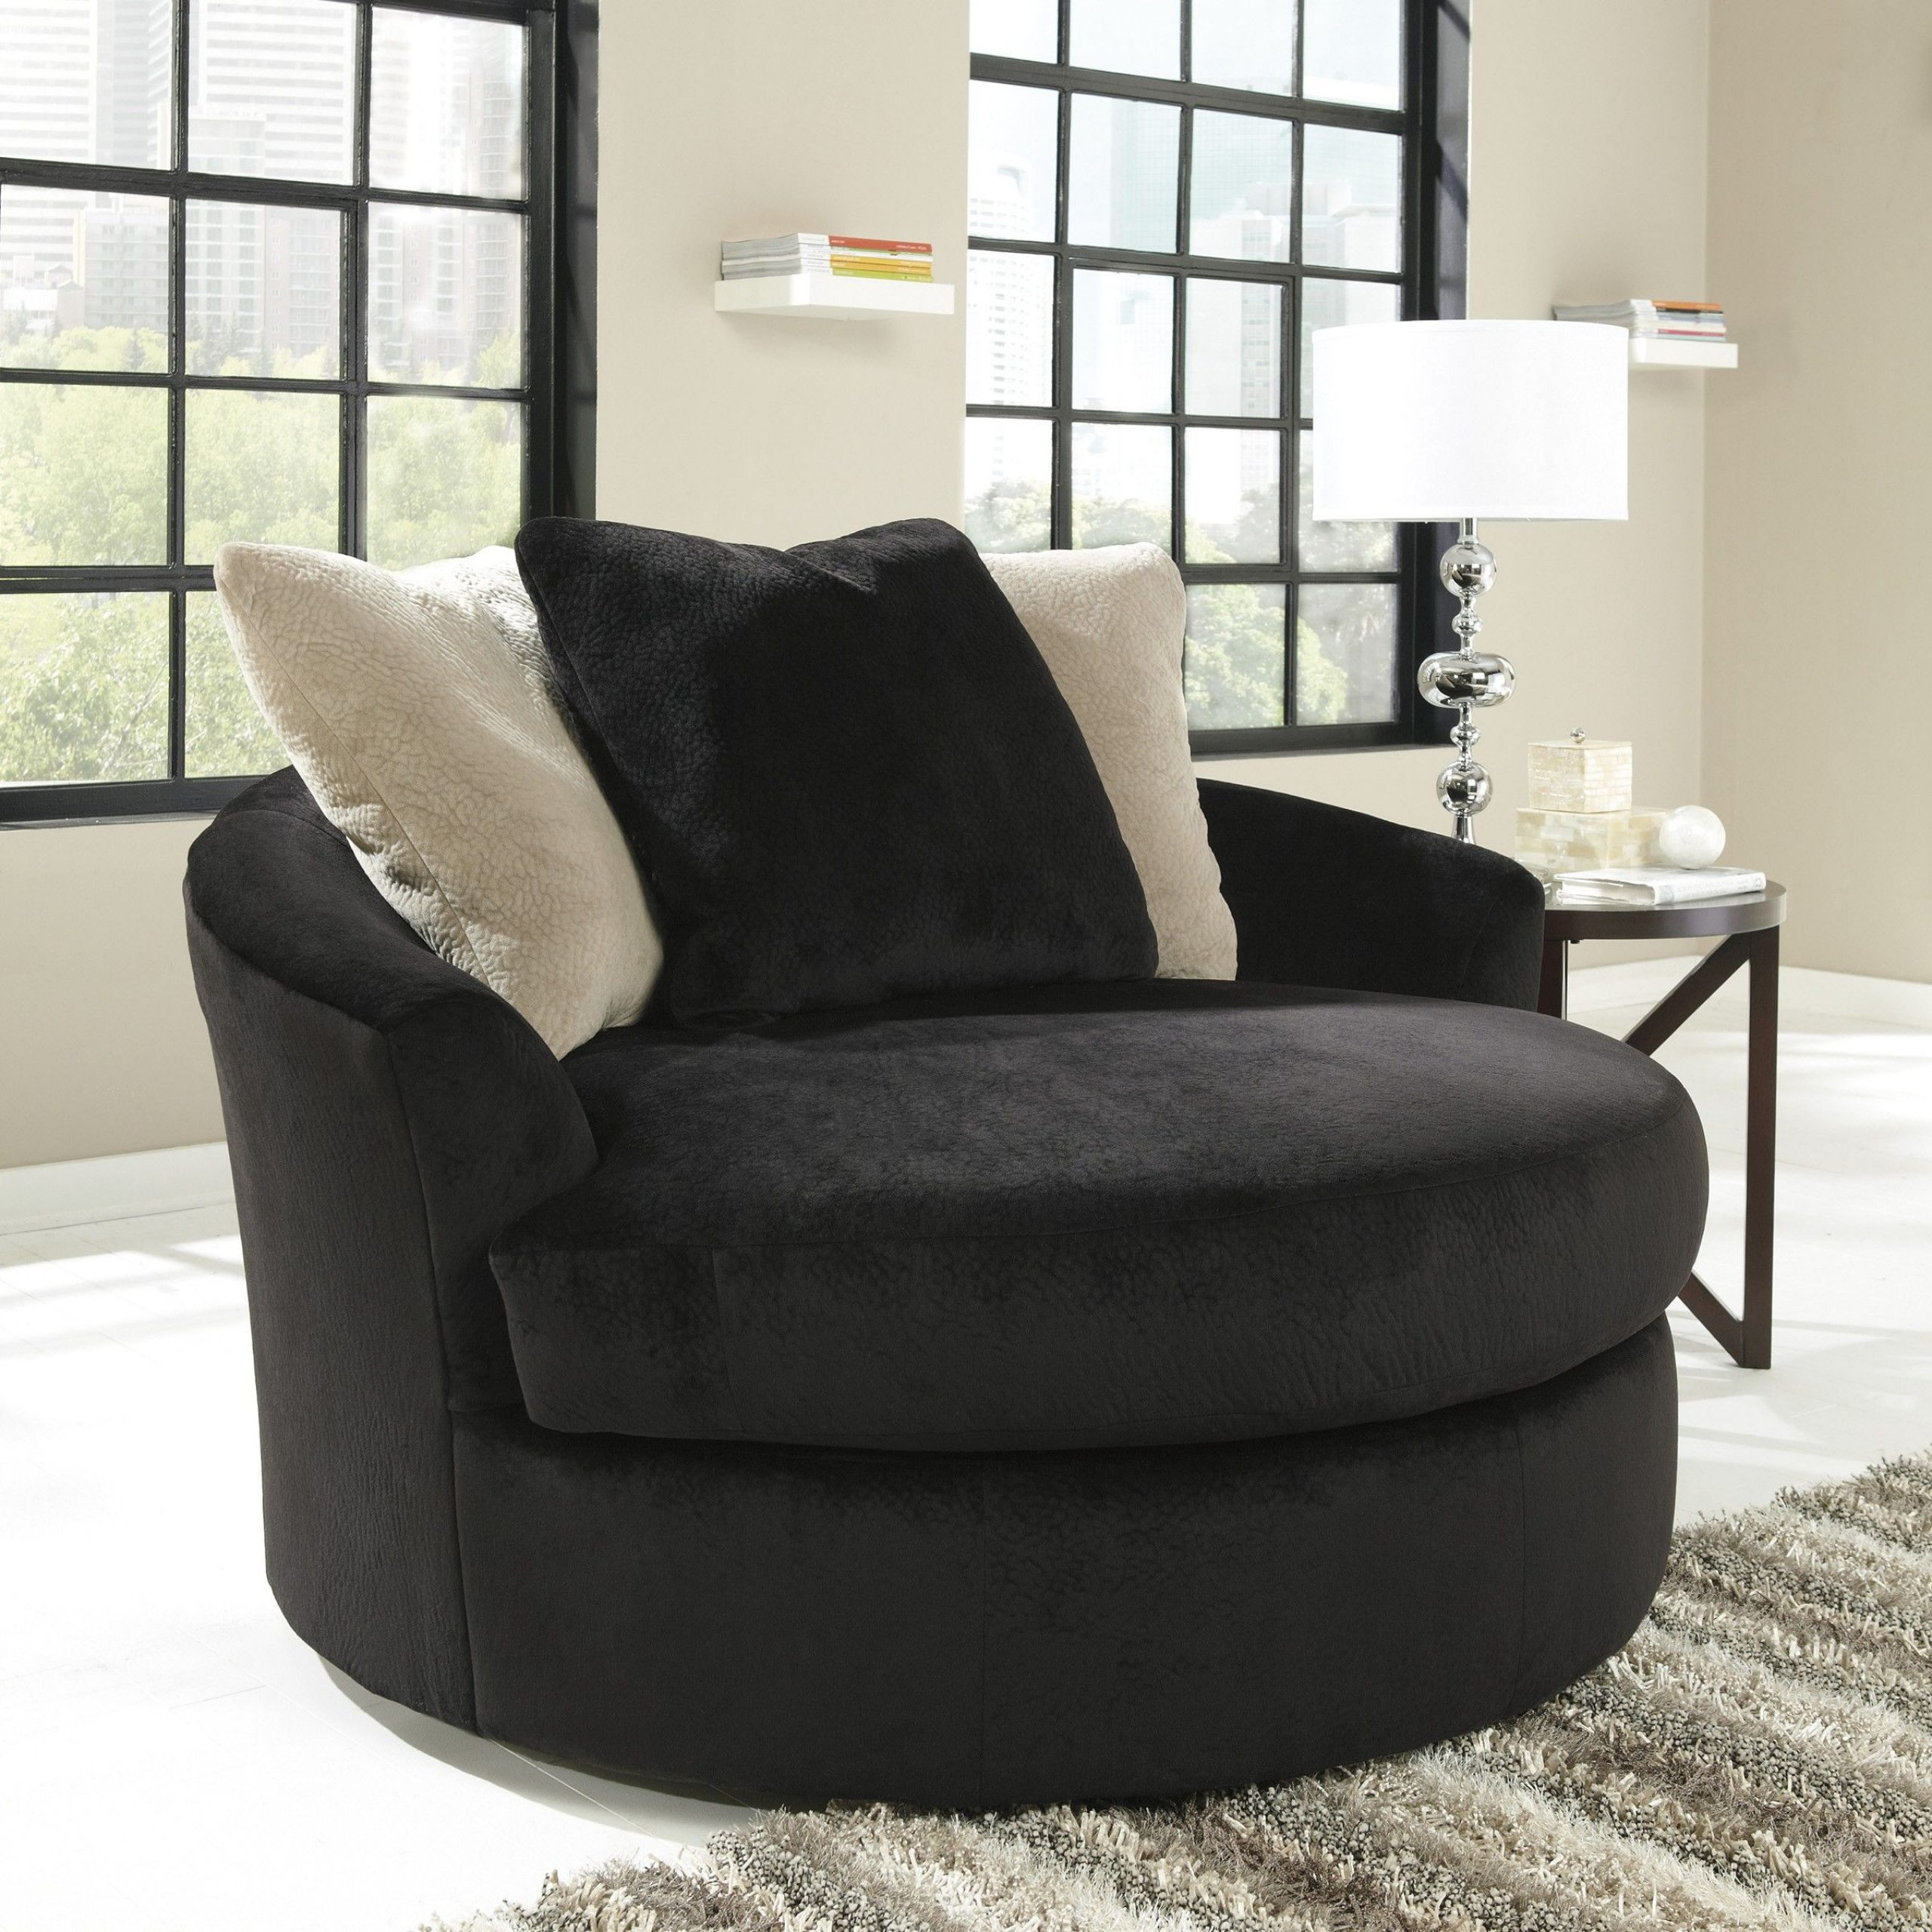 403 – Forbidden | Round Swivel Chair, Wayfair Living Room Throughout Round Swivel Sofa Chairs (View 3 of 15)